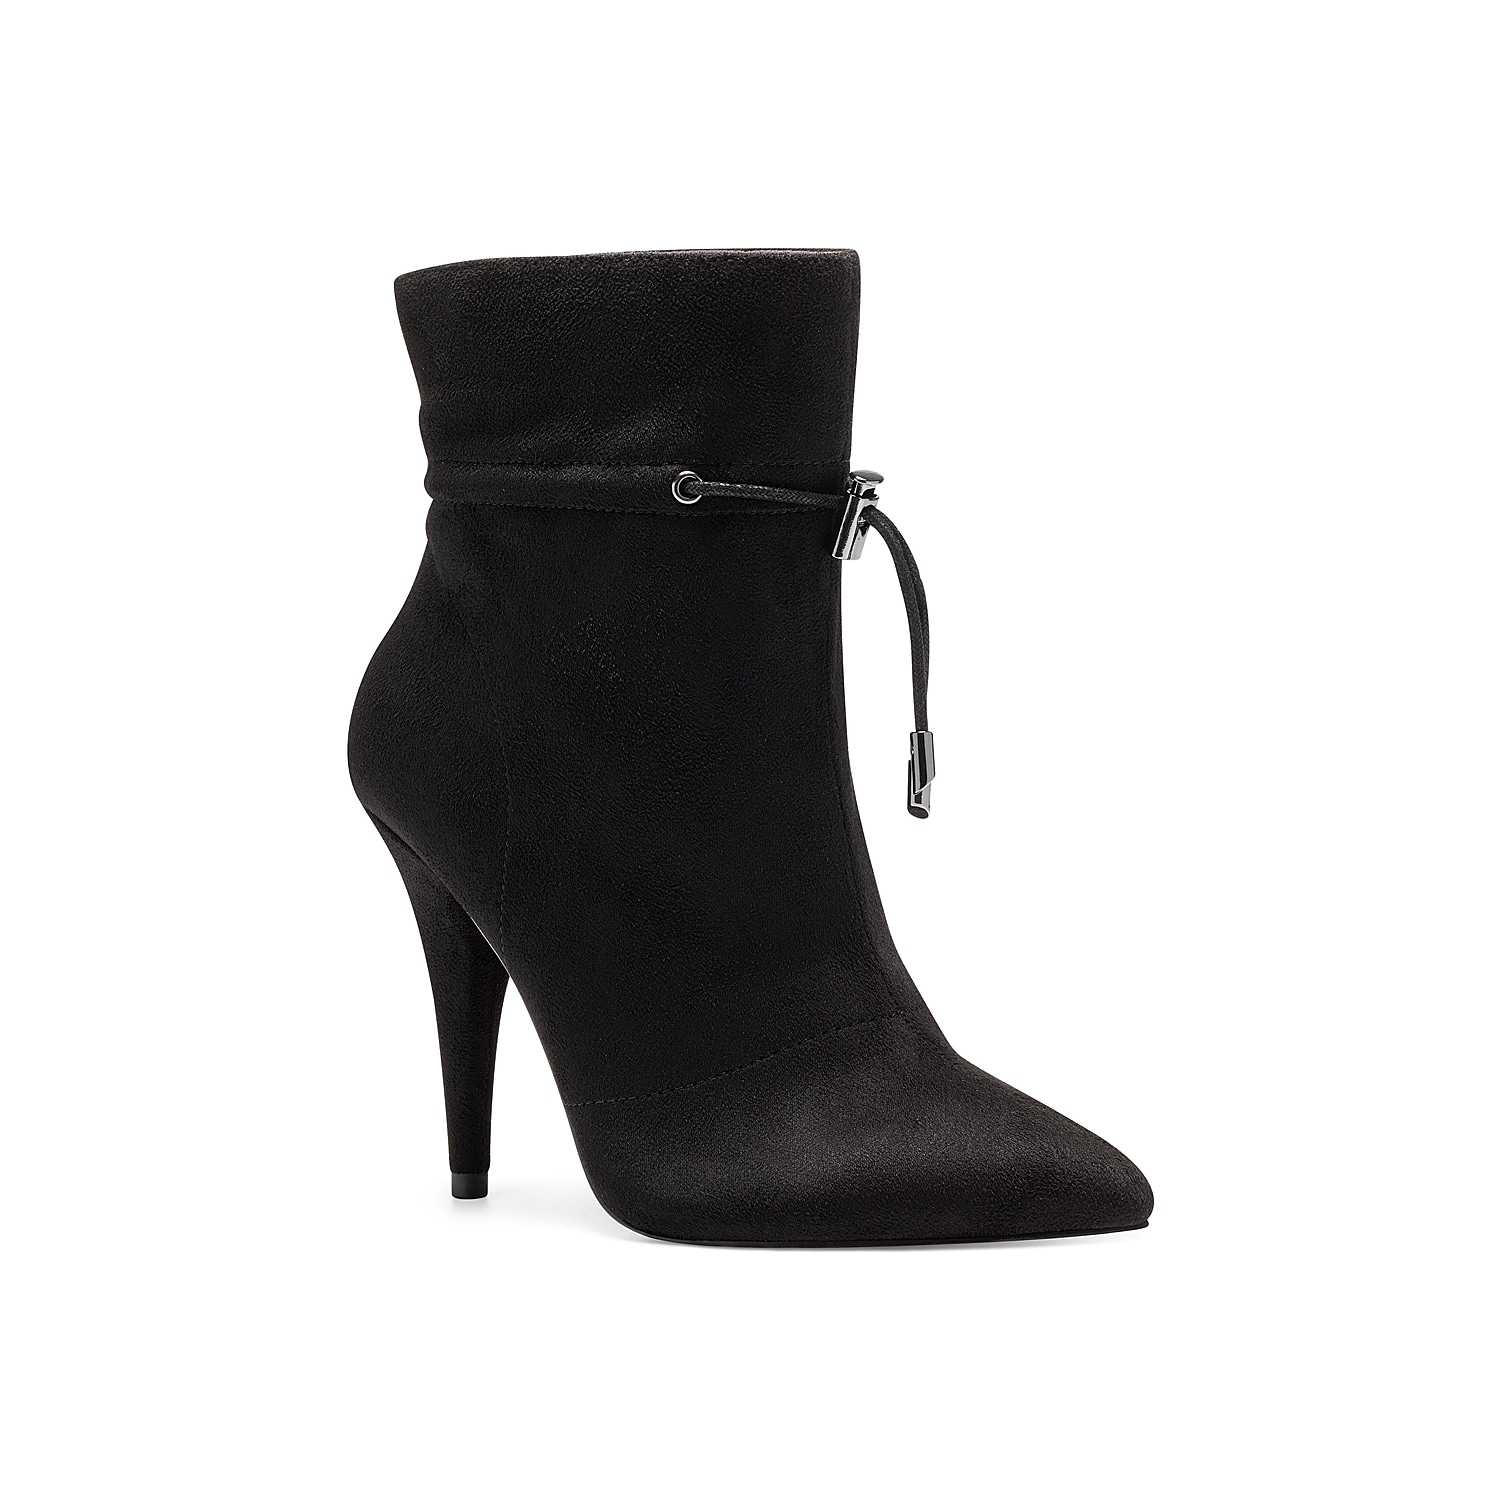 Add grace to your feminine looks by introducing the Jessica Simpson Kimele bootie. Comprising sleek pointed toe front, this bootie has a beautiful tapered heel and unique tie top closure for a secure fit.Click here for Boot Measuring Guide.